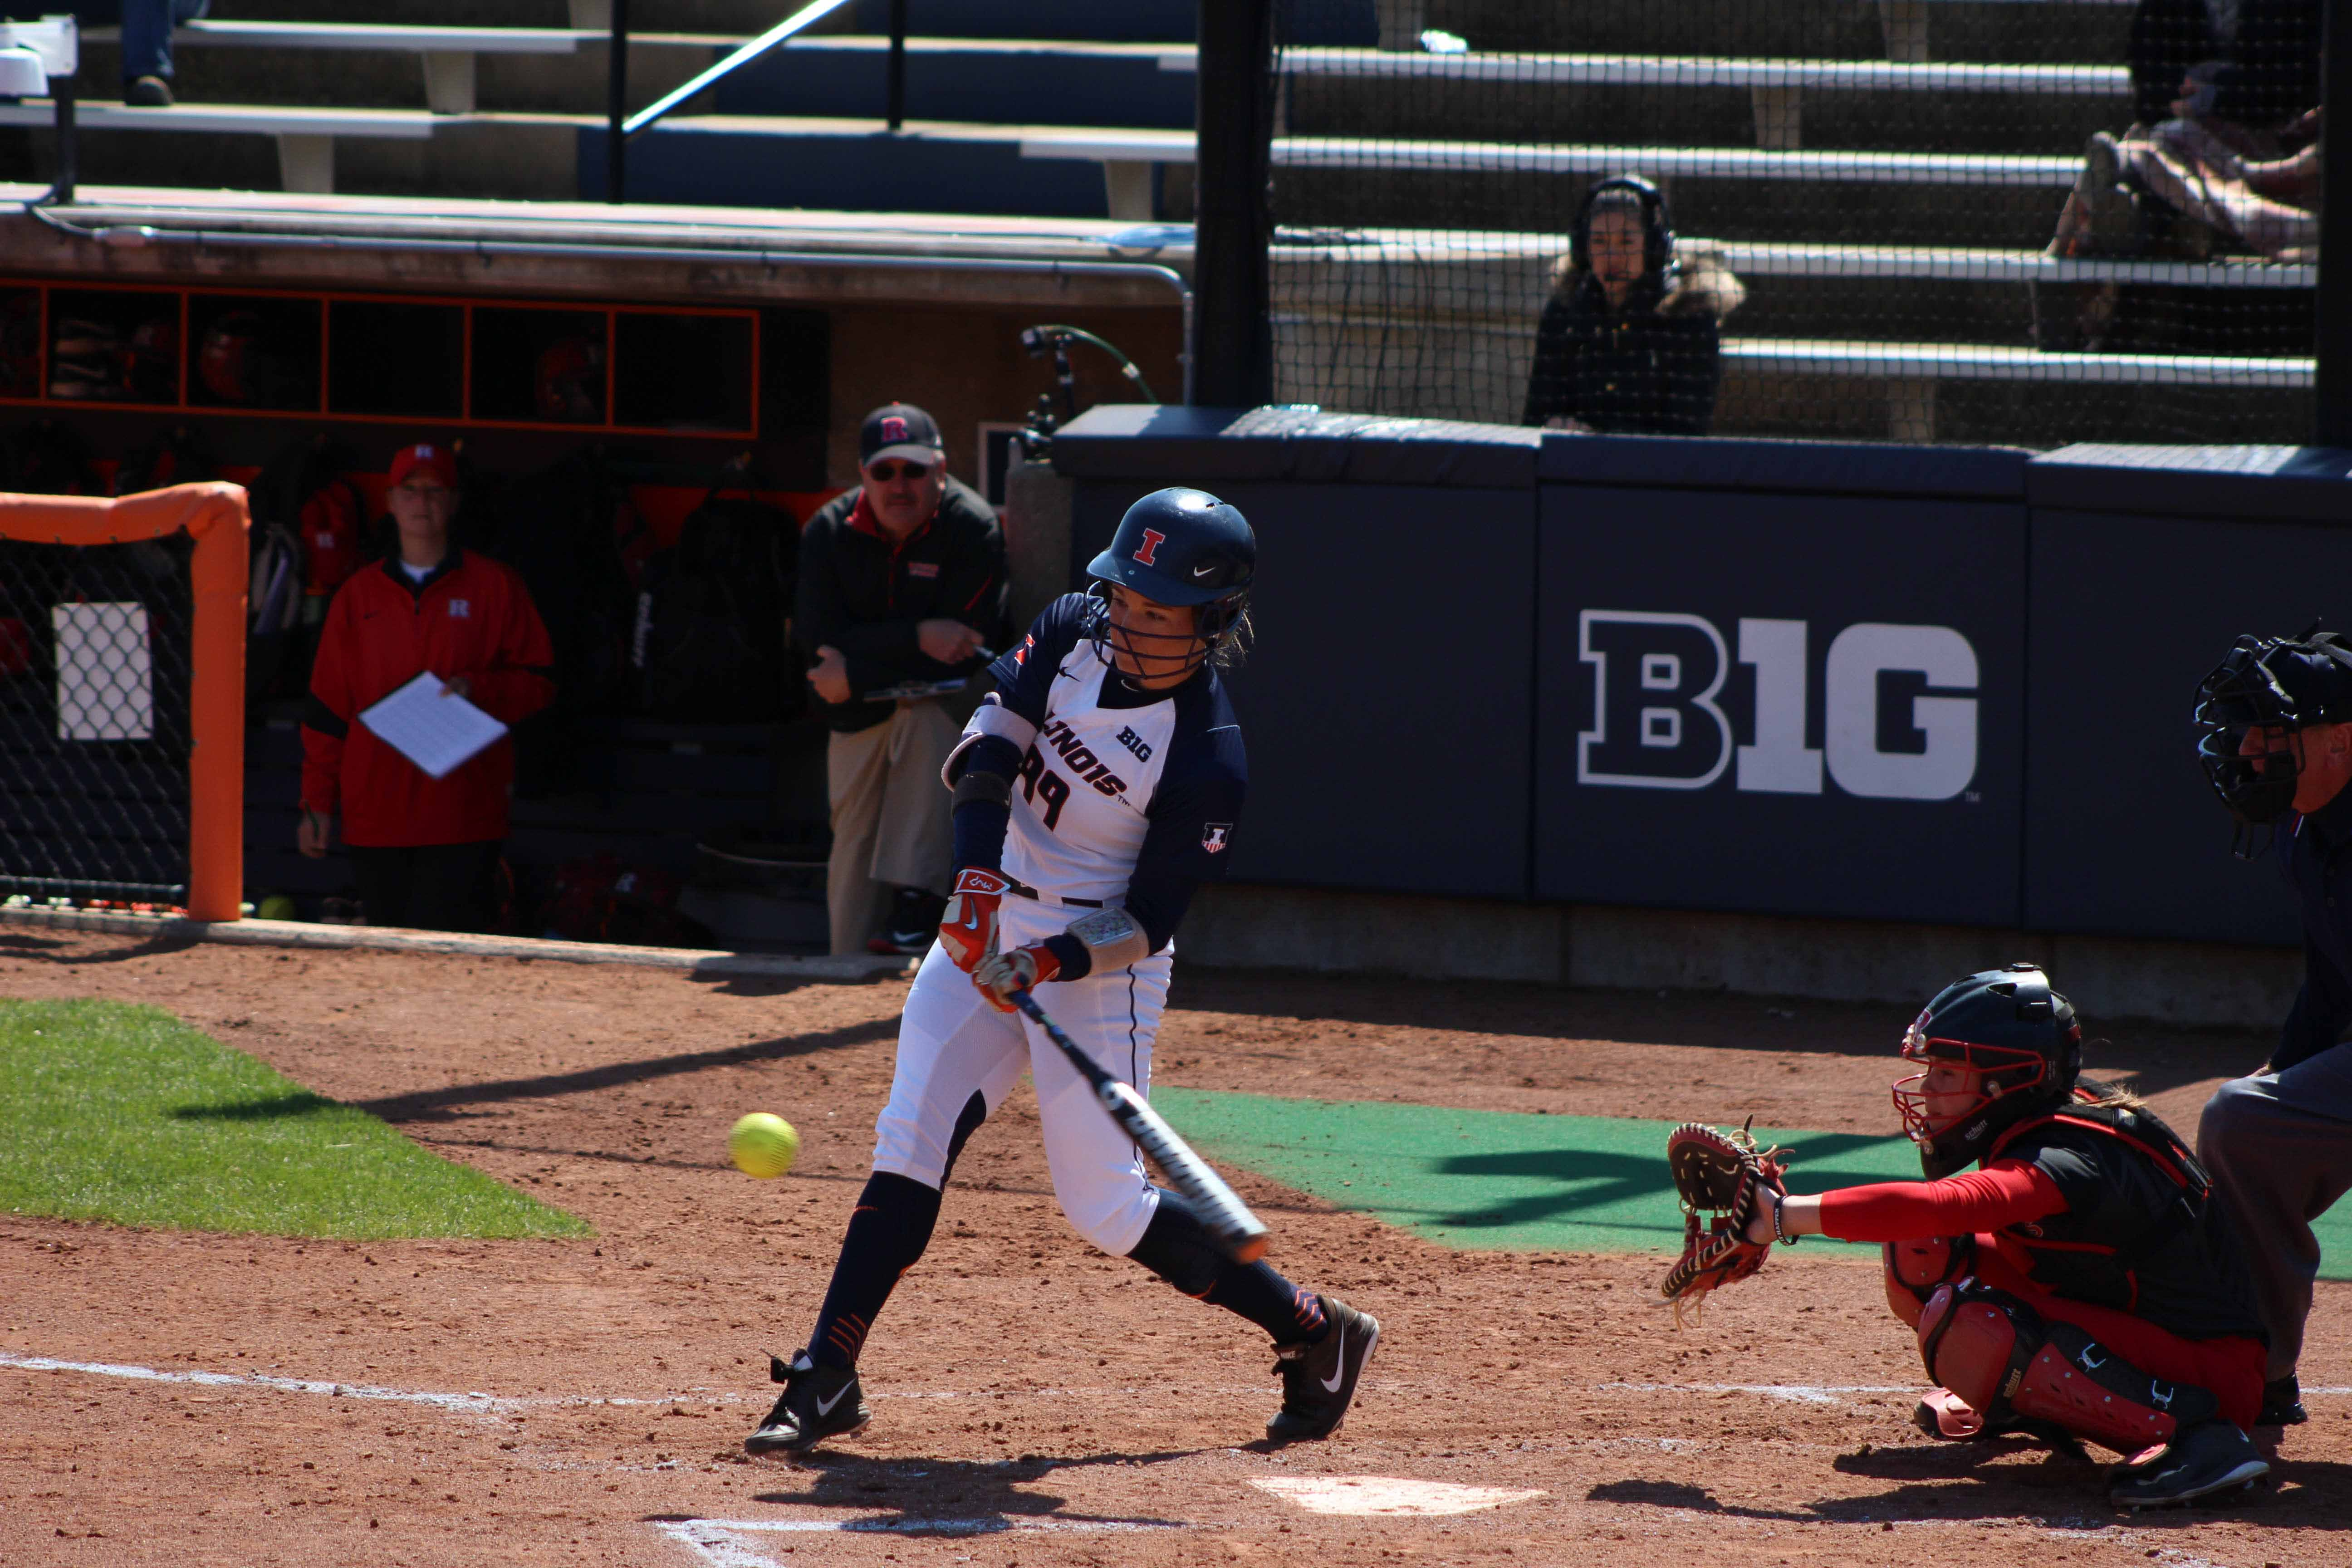 Annie Fleming has been one of the most reliable for the Illini batting .433. Fleming and Nicole Evans have combined for four of the team's seven home runs.